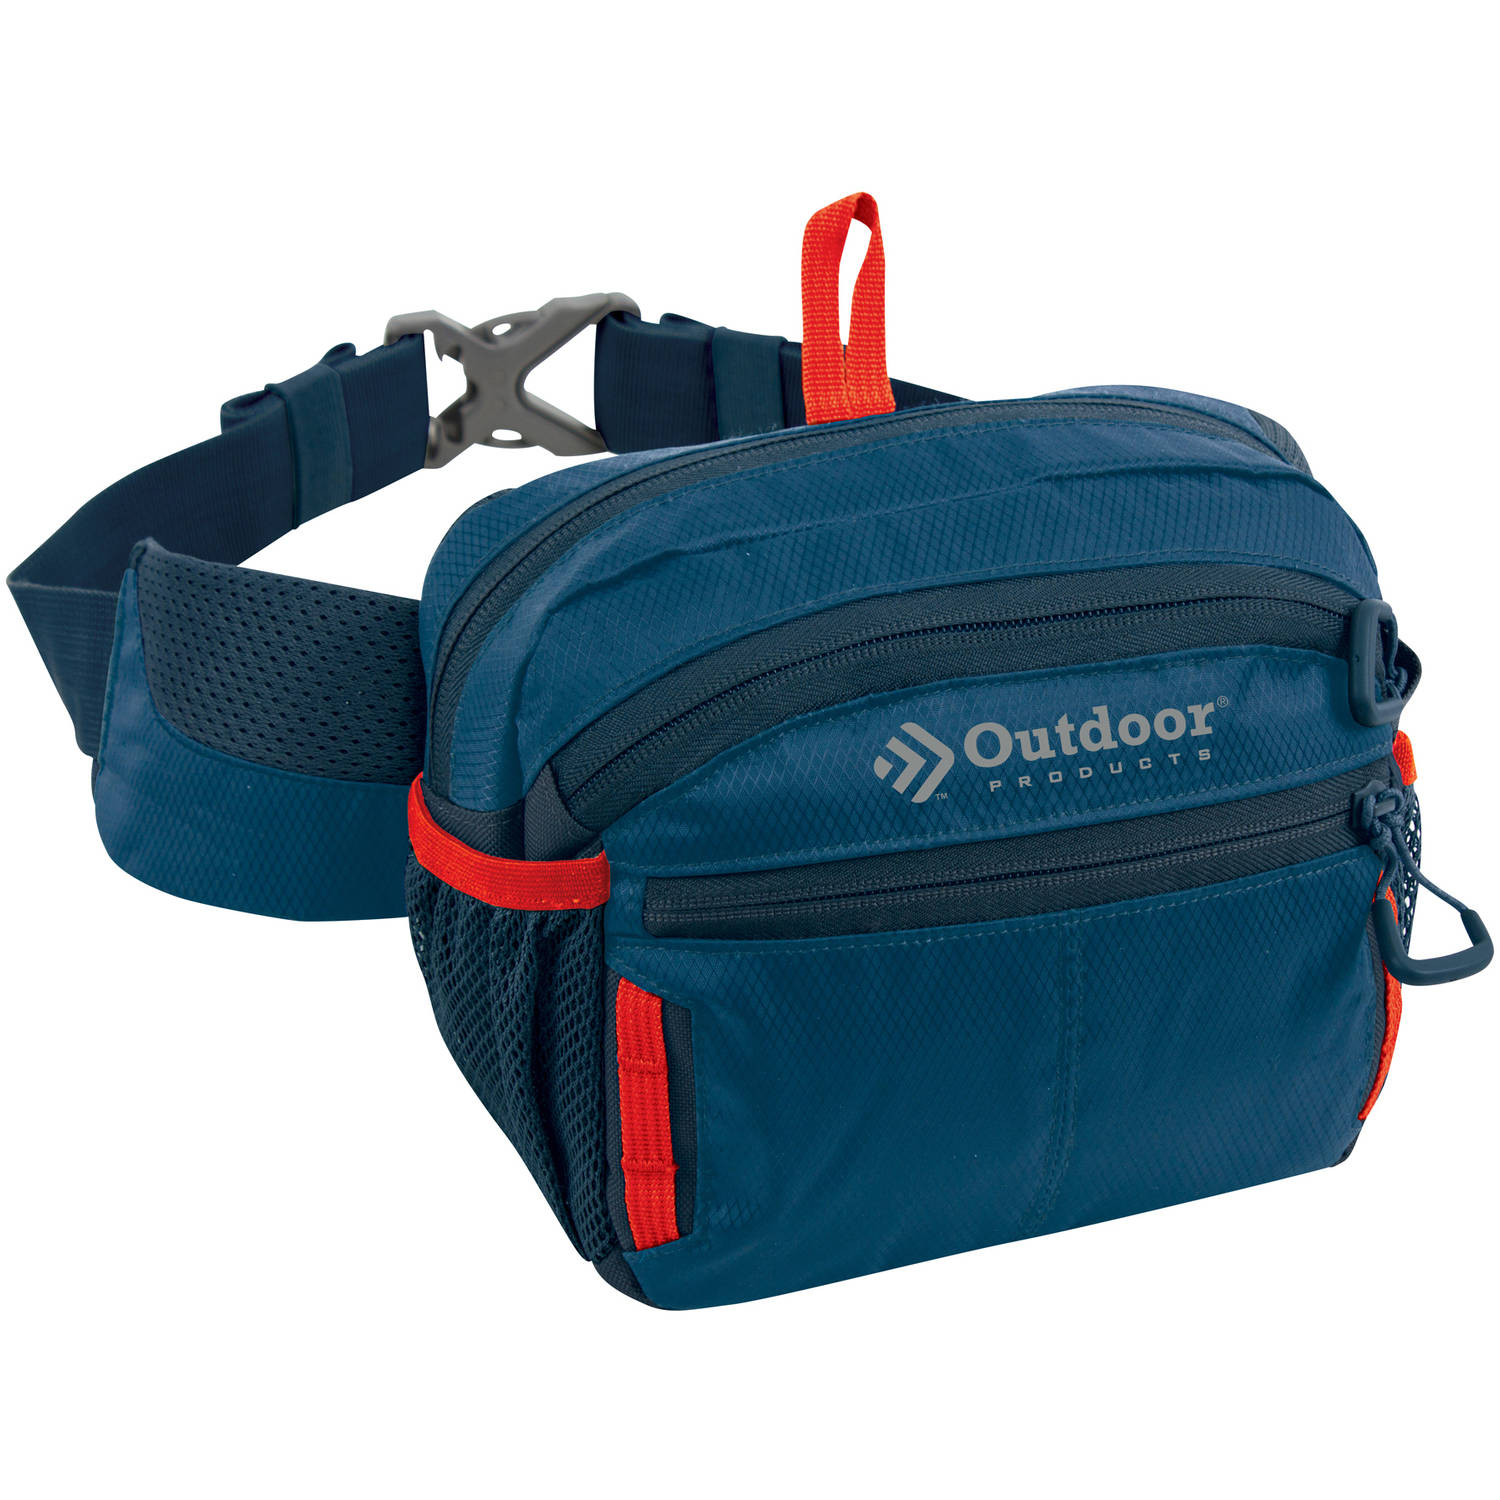 Outdoor Products Echo Waist Fanny Pack, Denim